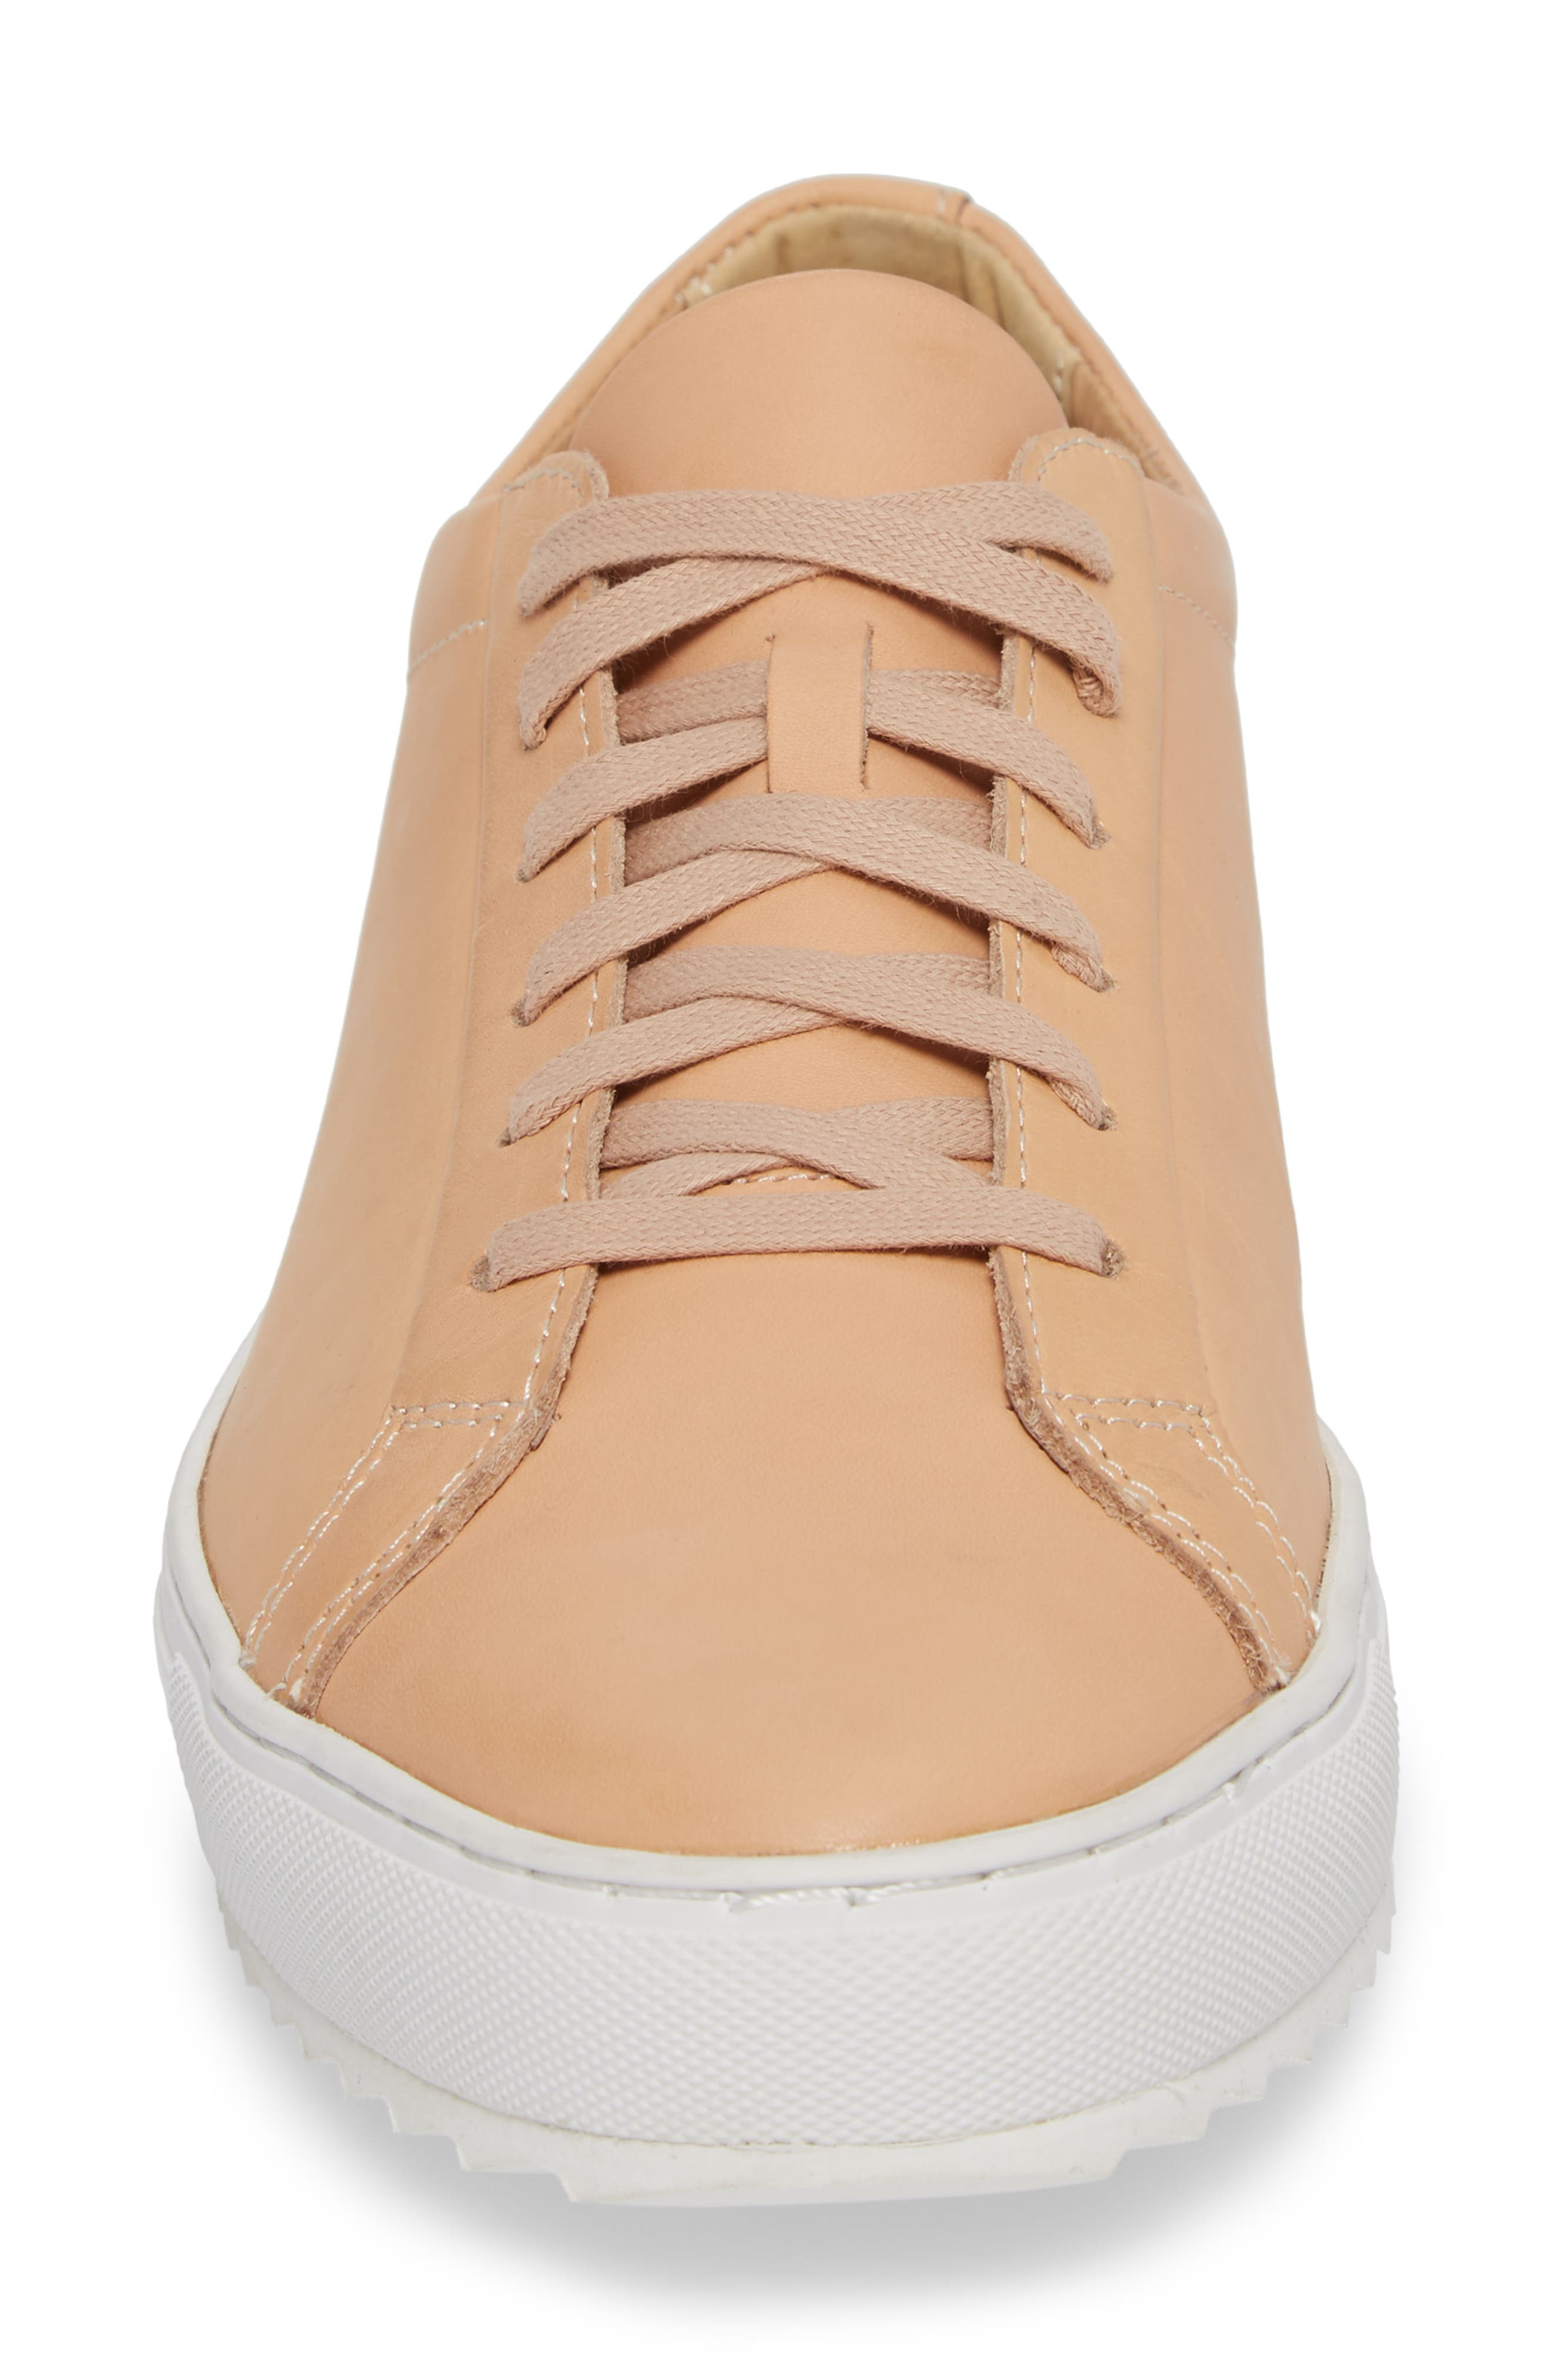 Kennedy Lugged Sneaker,                             Alternate thumbnail 4, color,                             Natural Leather